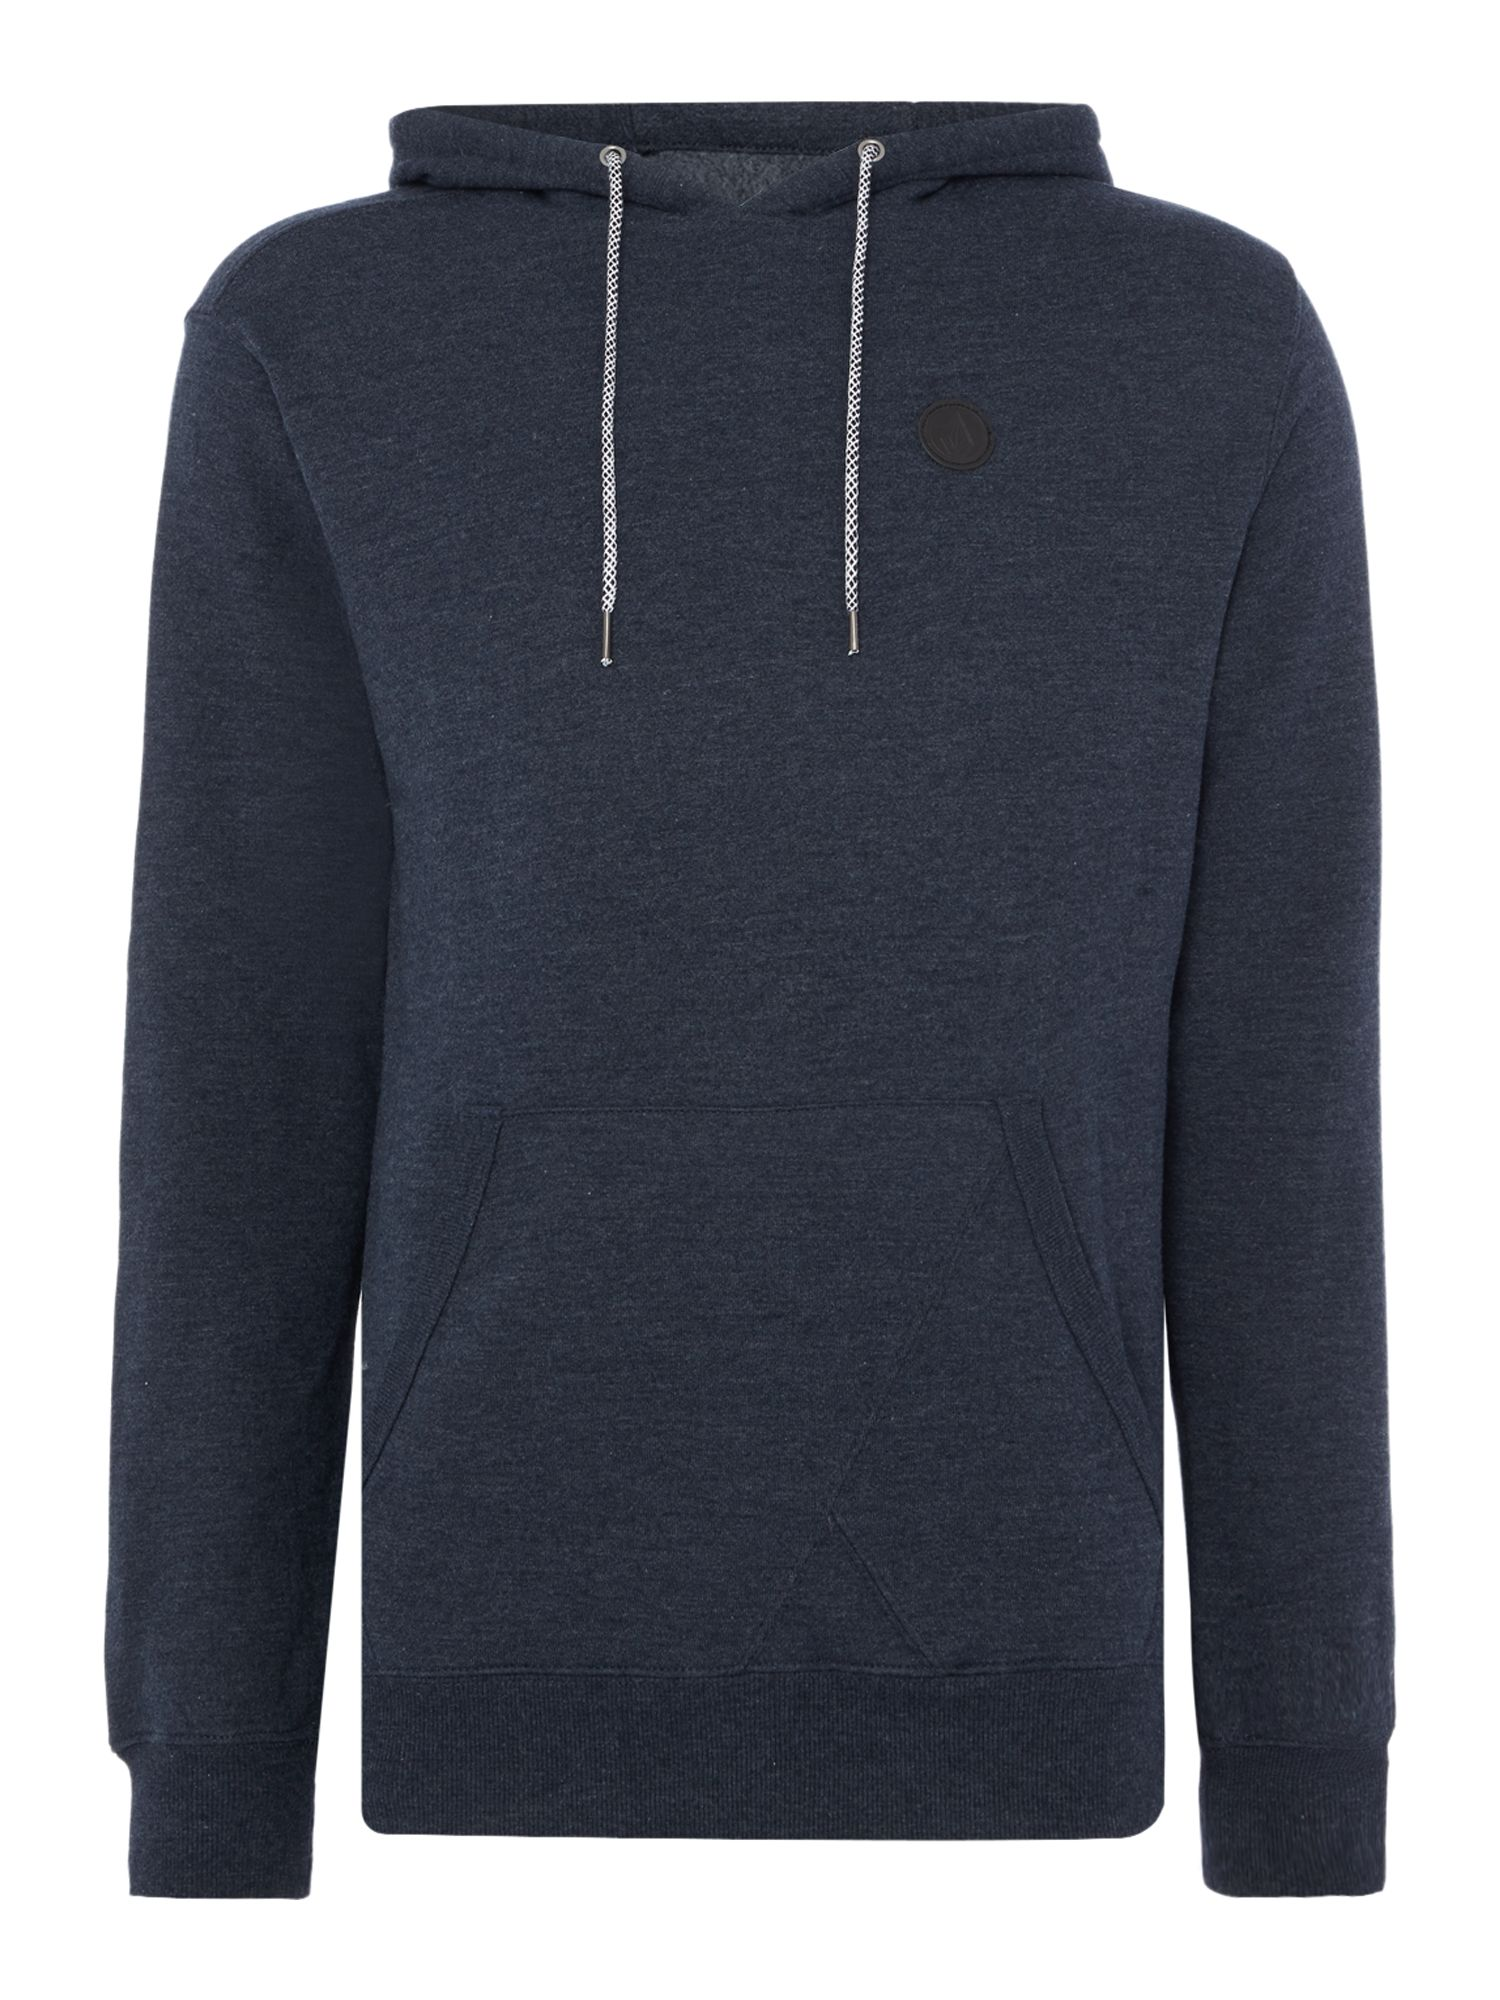 Men's Volcom Basic Fit Hoodie Fleece, Blue